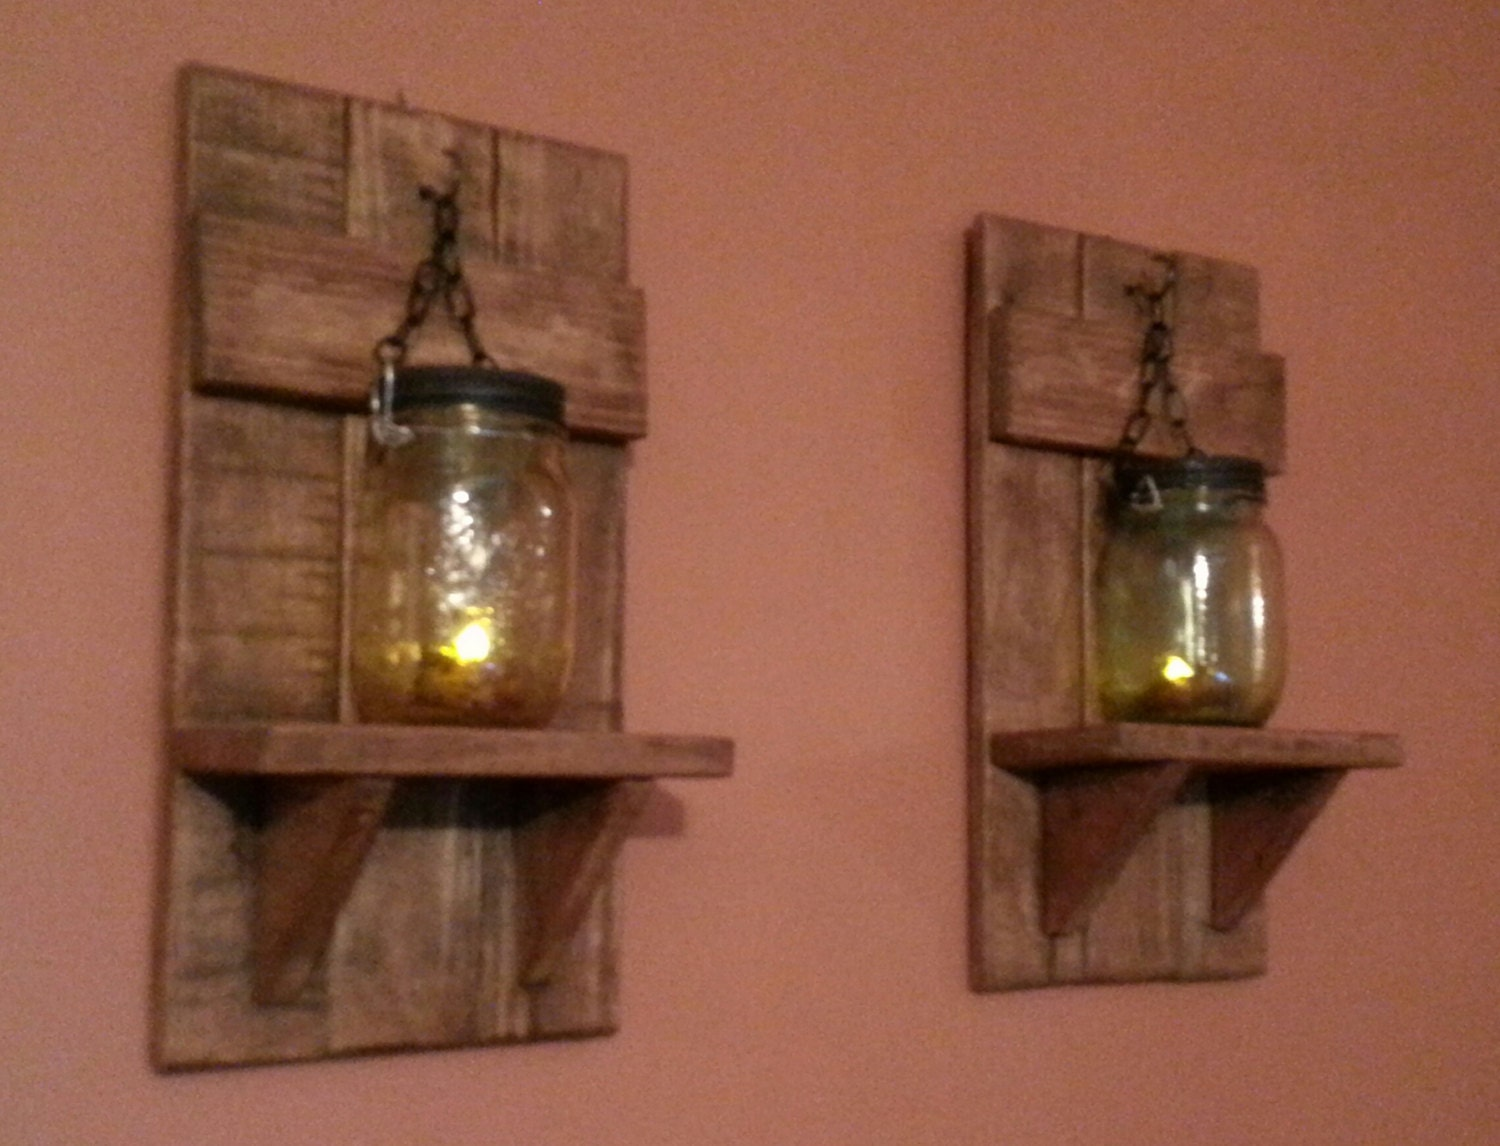 Country Wall Sconce Candle Holder : Unique Wood Candle Holder Country Decor Mason Jar candle